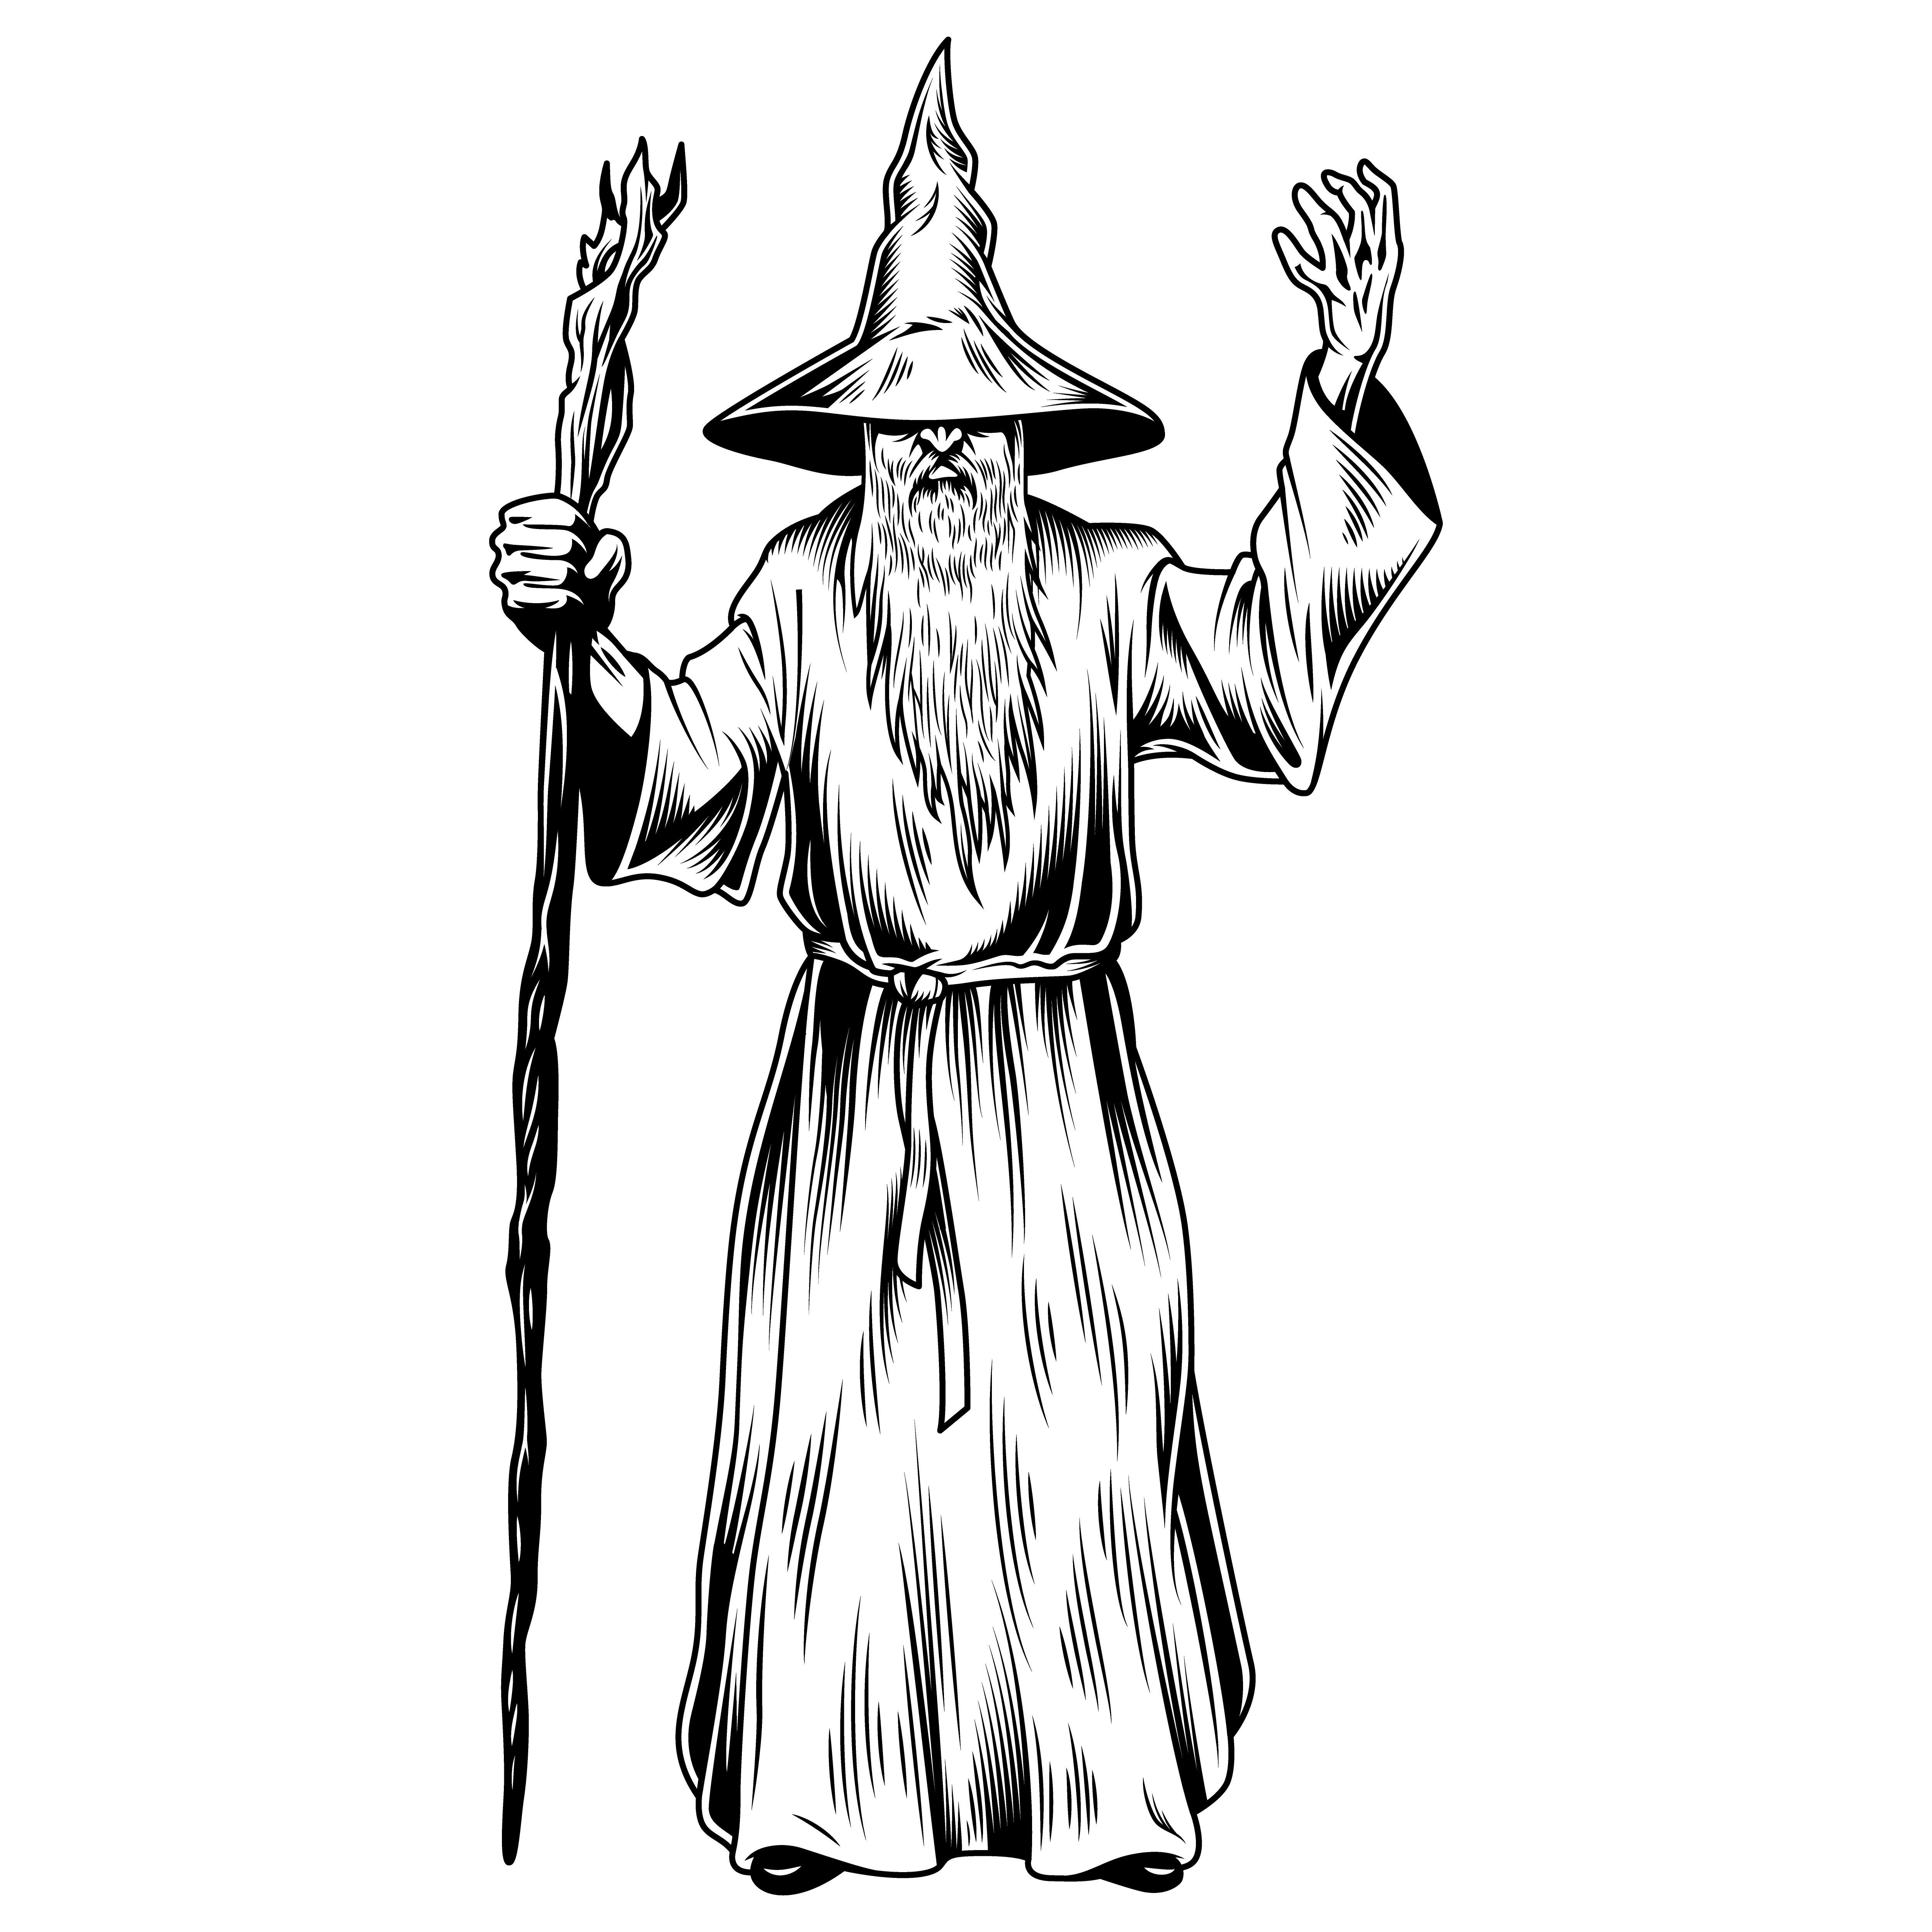 Wizard Illustration In 2020 Fantasy Wizard Vector Images Vector Artwork Save even more with our subscription plans. pinterest